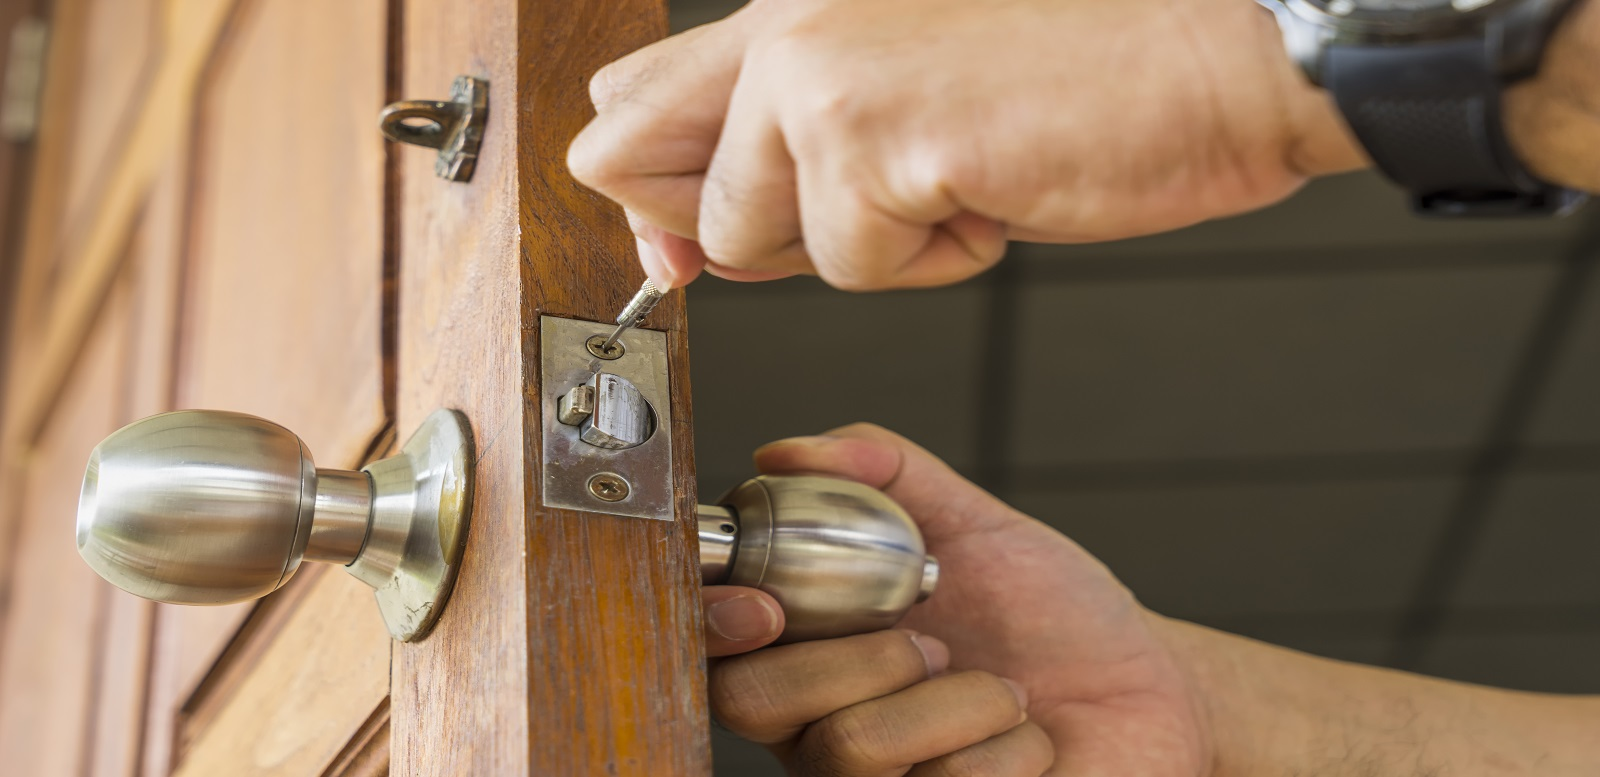 Some common myths about locksmiths debunked